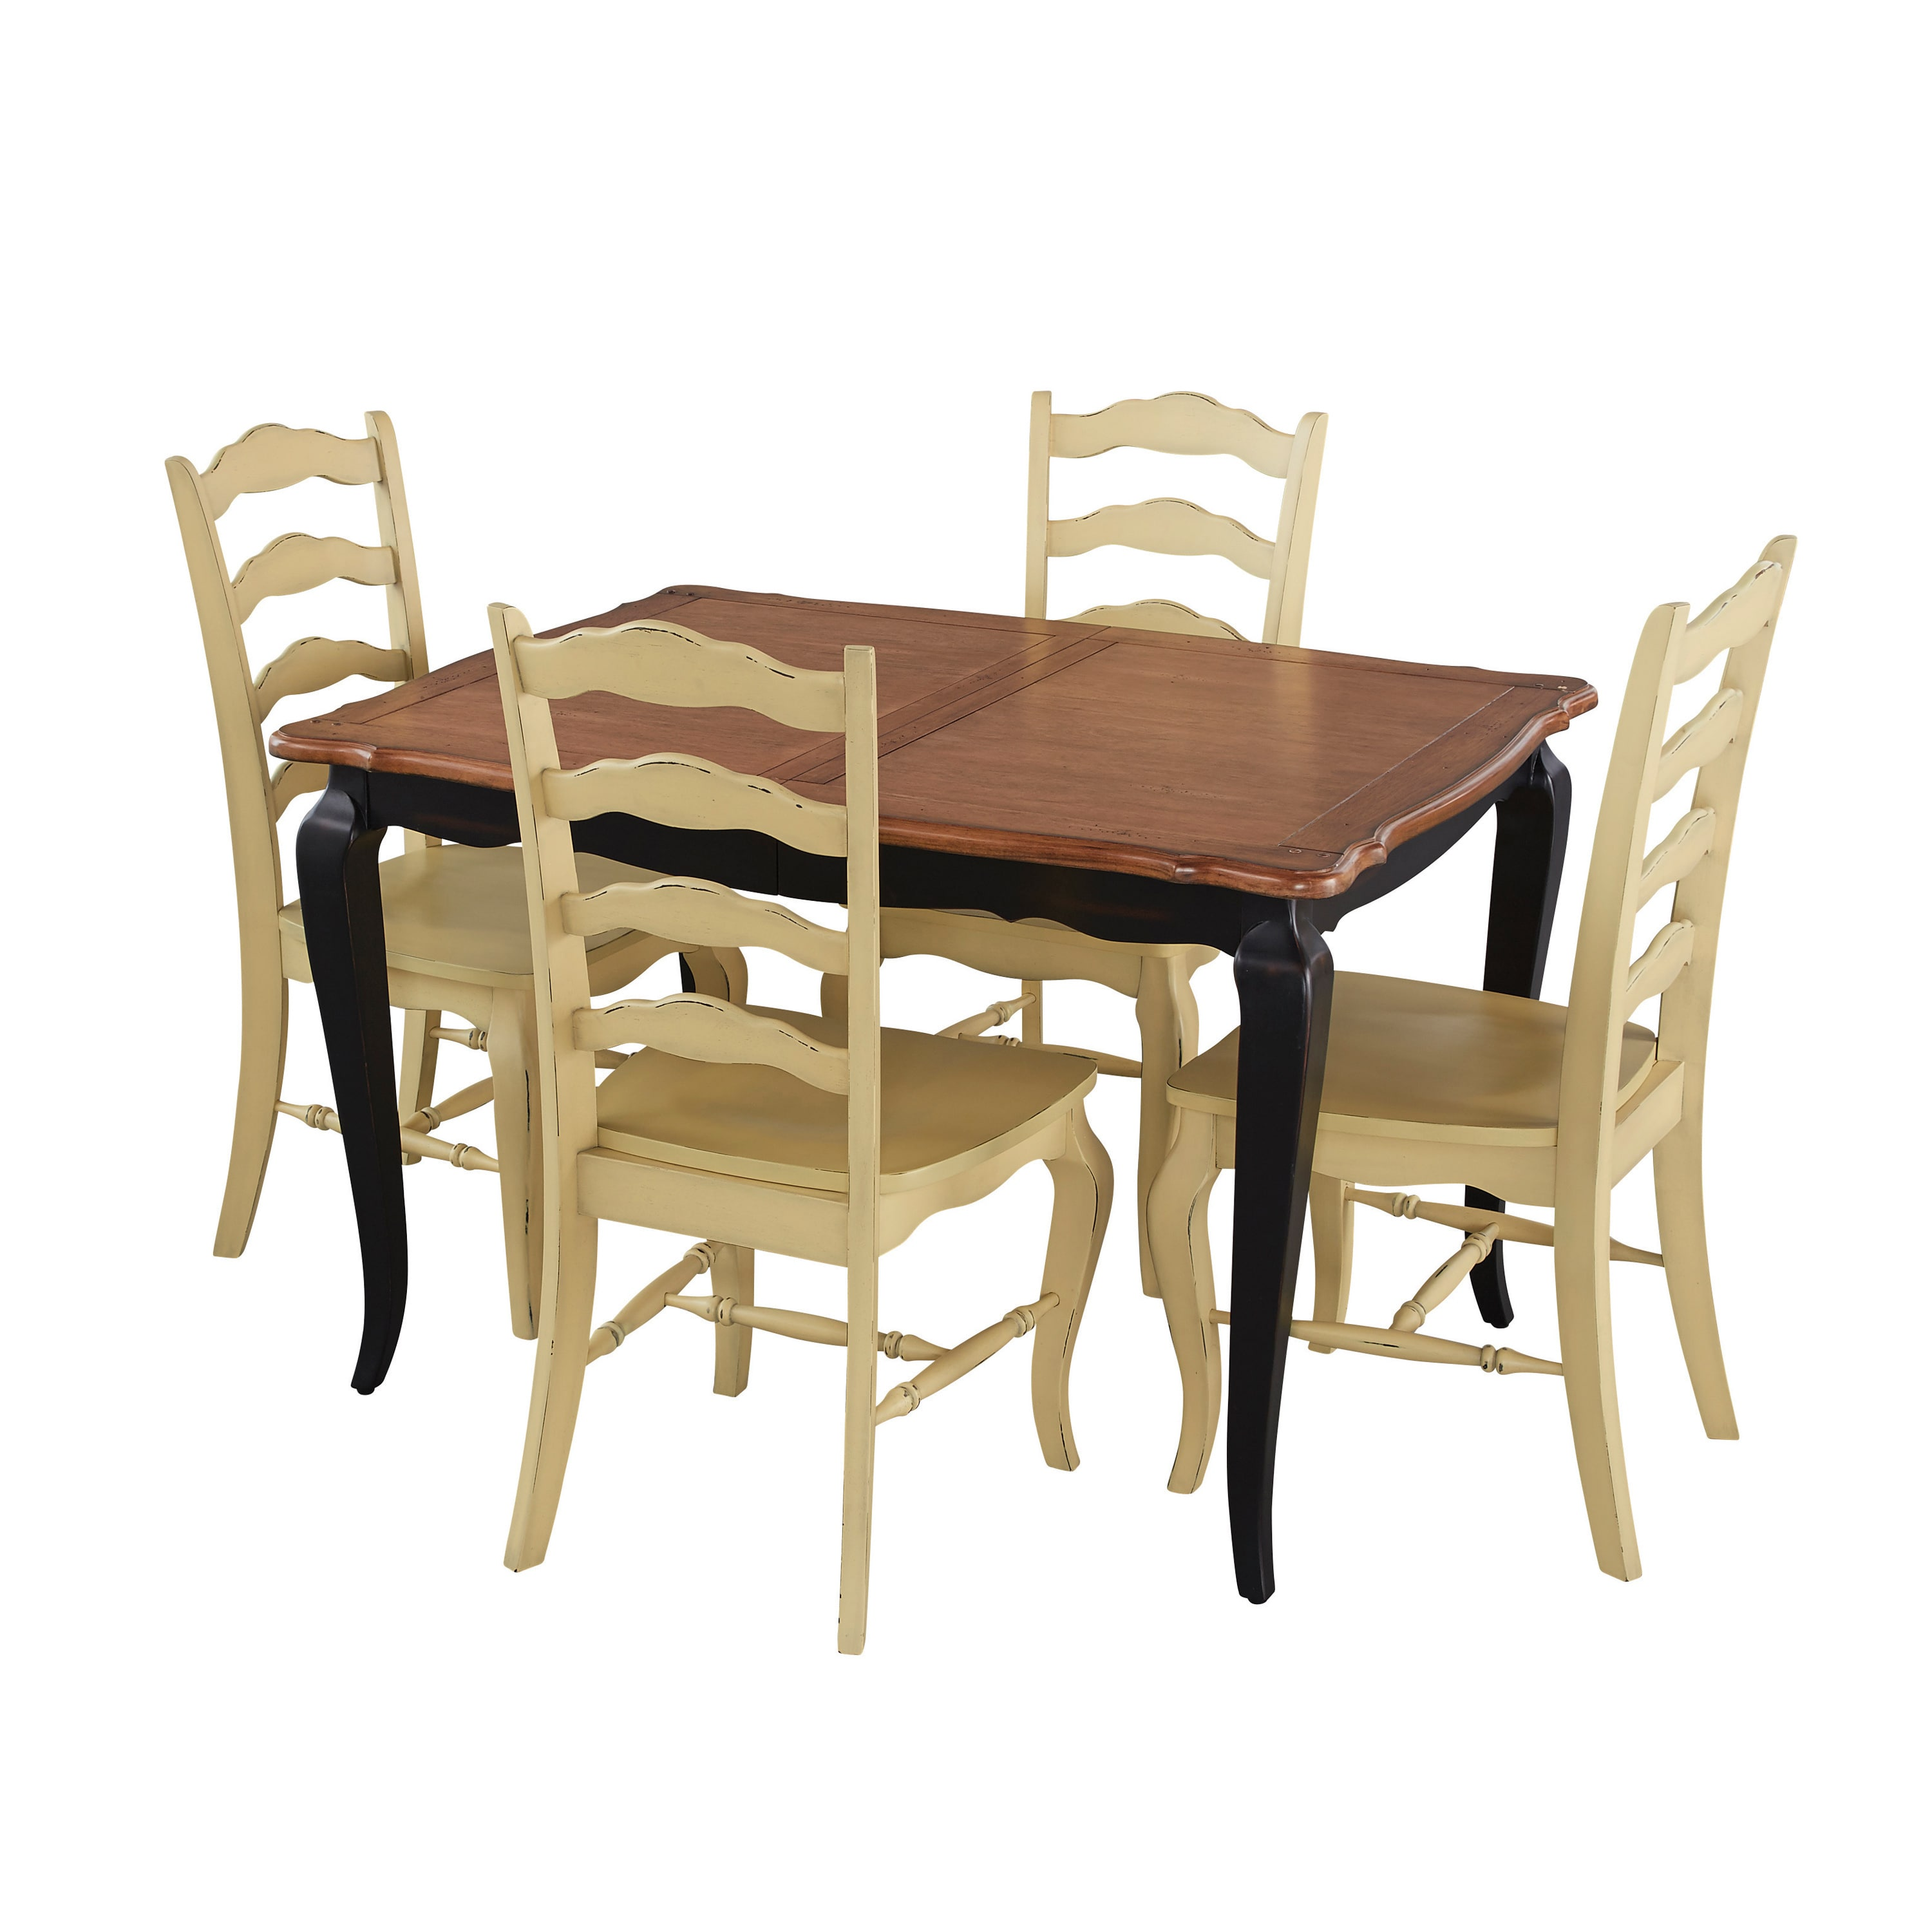 Home Styles French Countryside black and oak 5-piece Dining Set w/ blue chairs